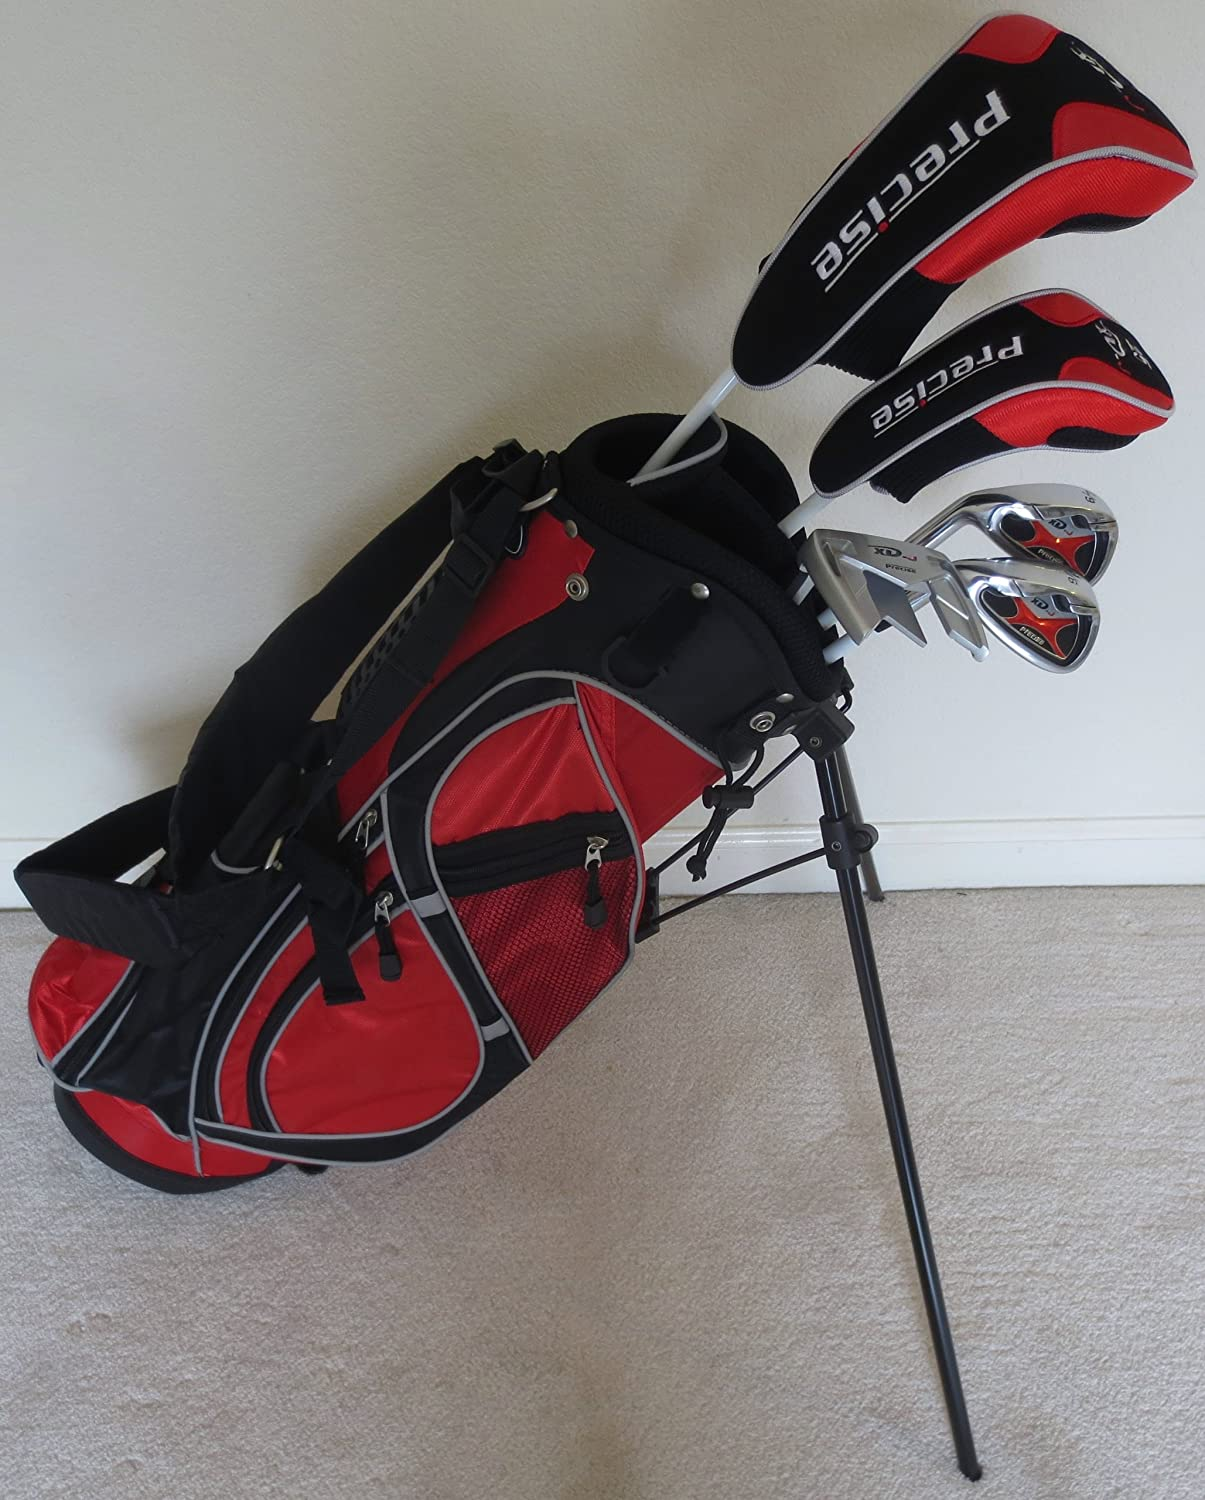 Left Handed Junior Golf Club Set Complete With Stand Bag for Kids Ages 5-8 LH Red Color Premium Jr.